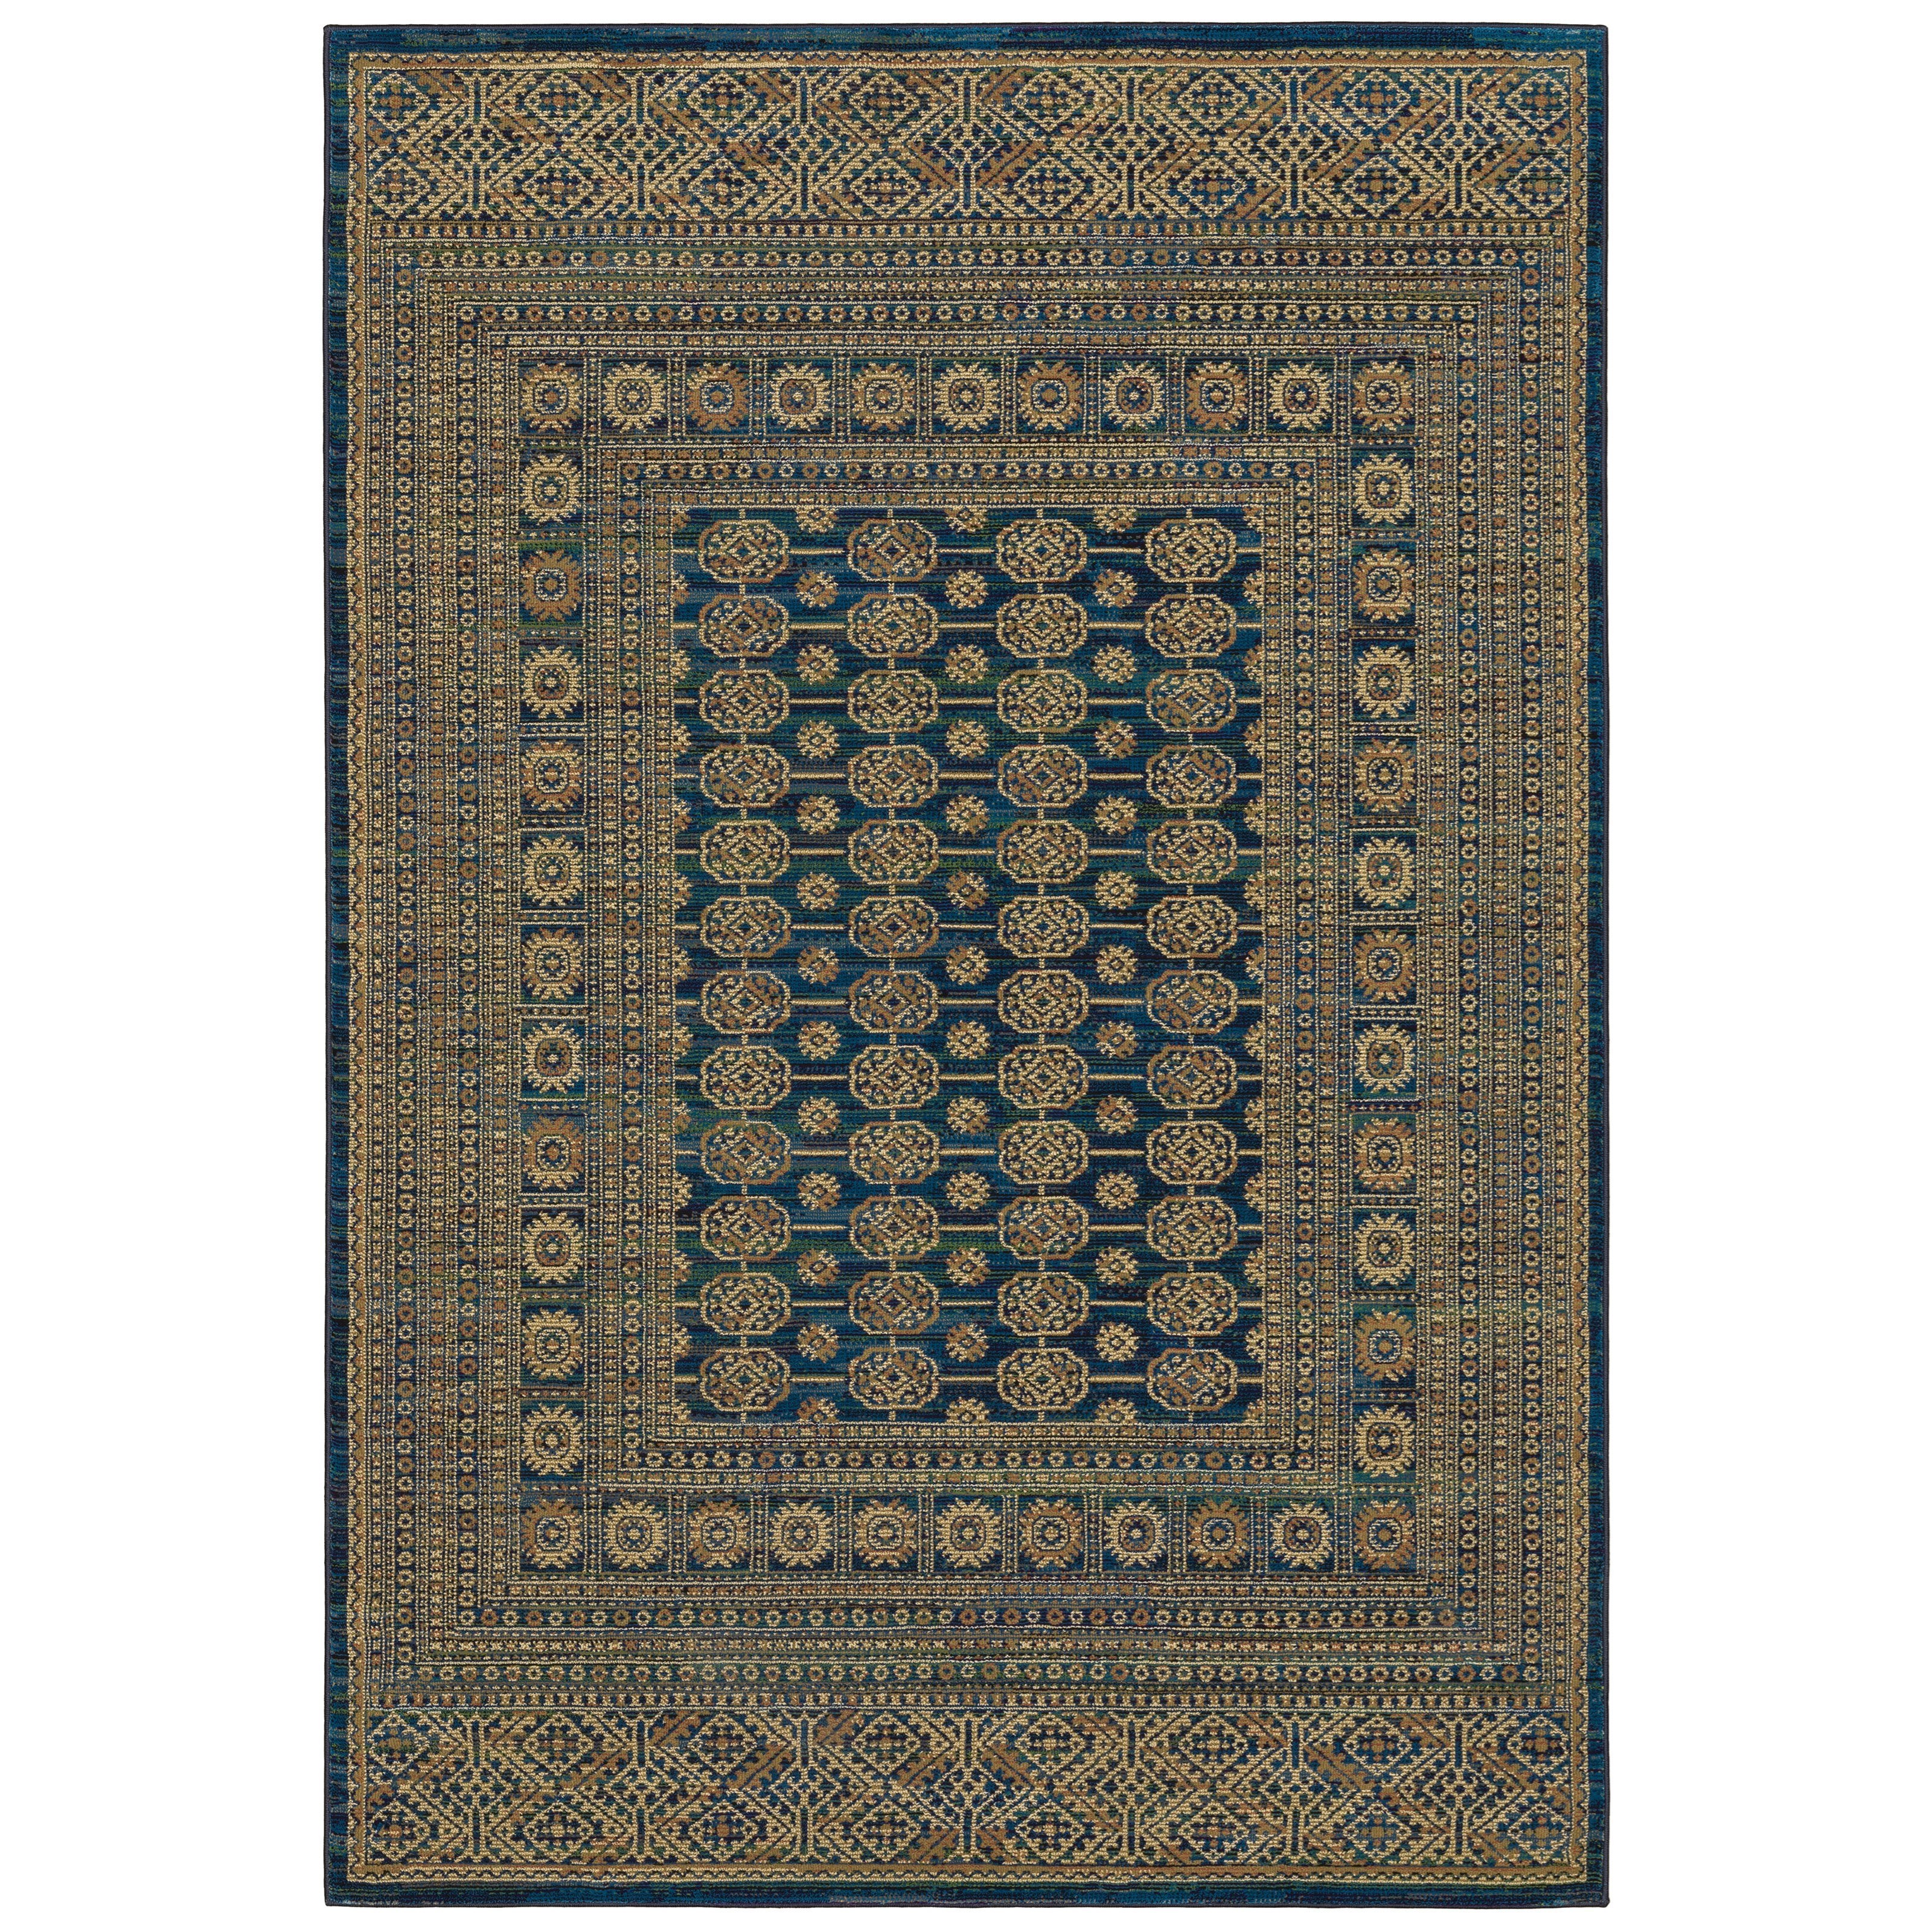 "Ankara 6' 7"" X  9' 6"" Rectangle Rug by Oriental Weavers at Darvin Furniture"